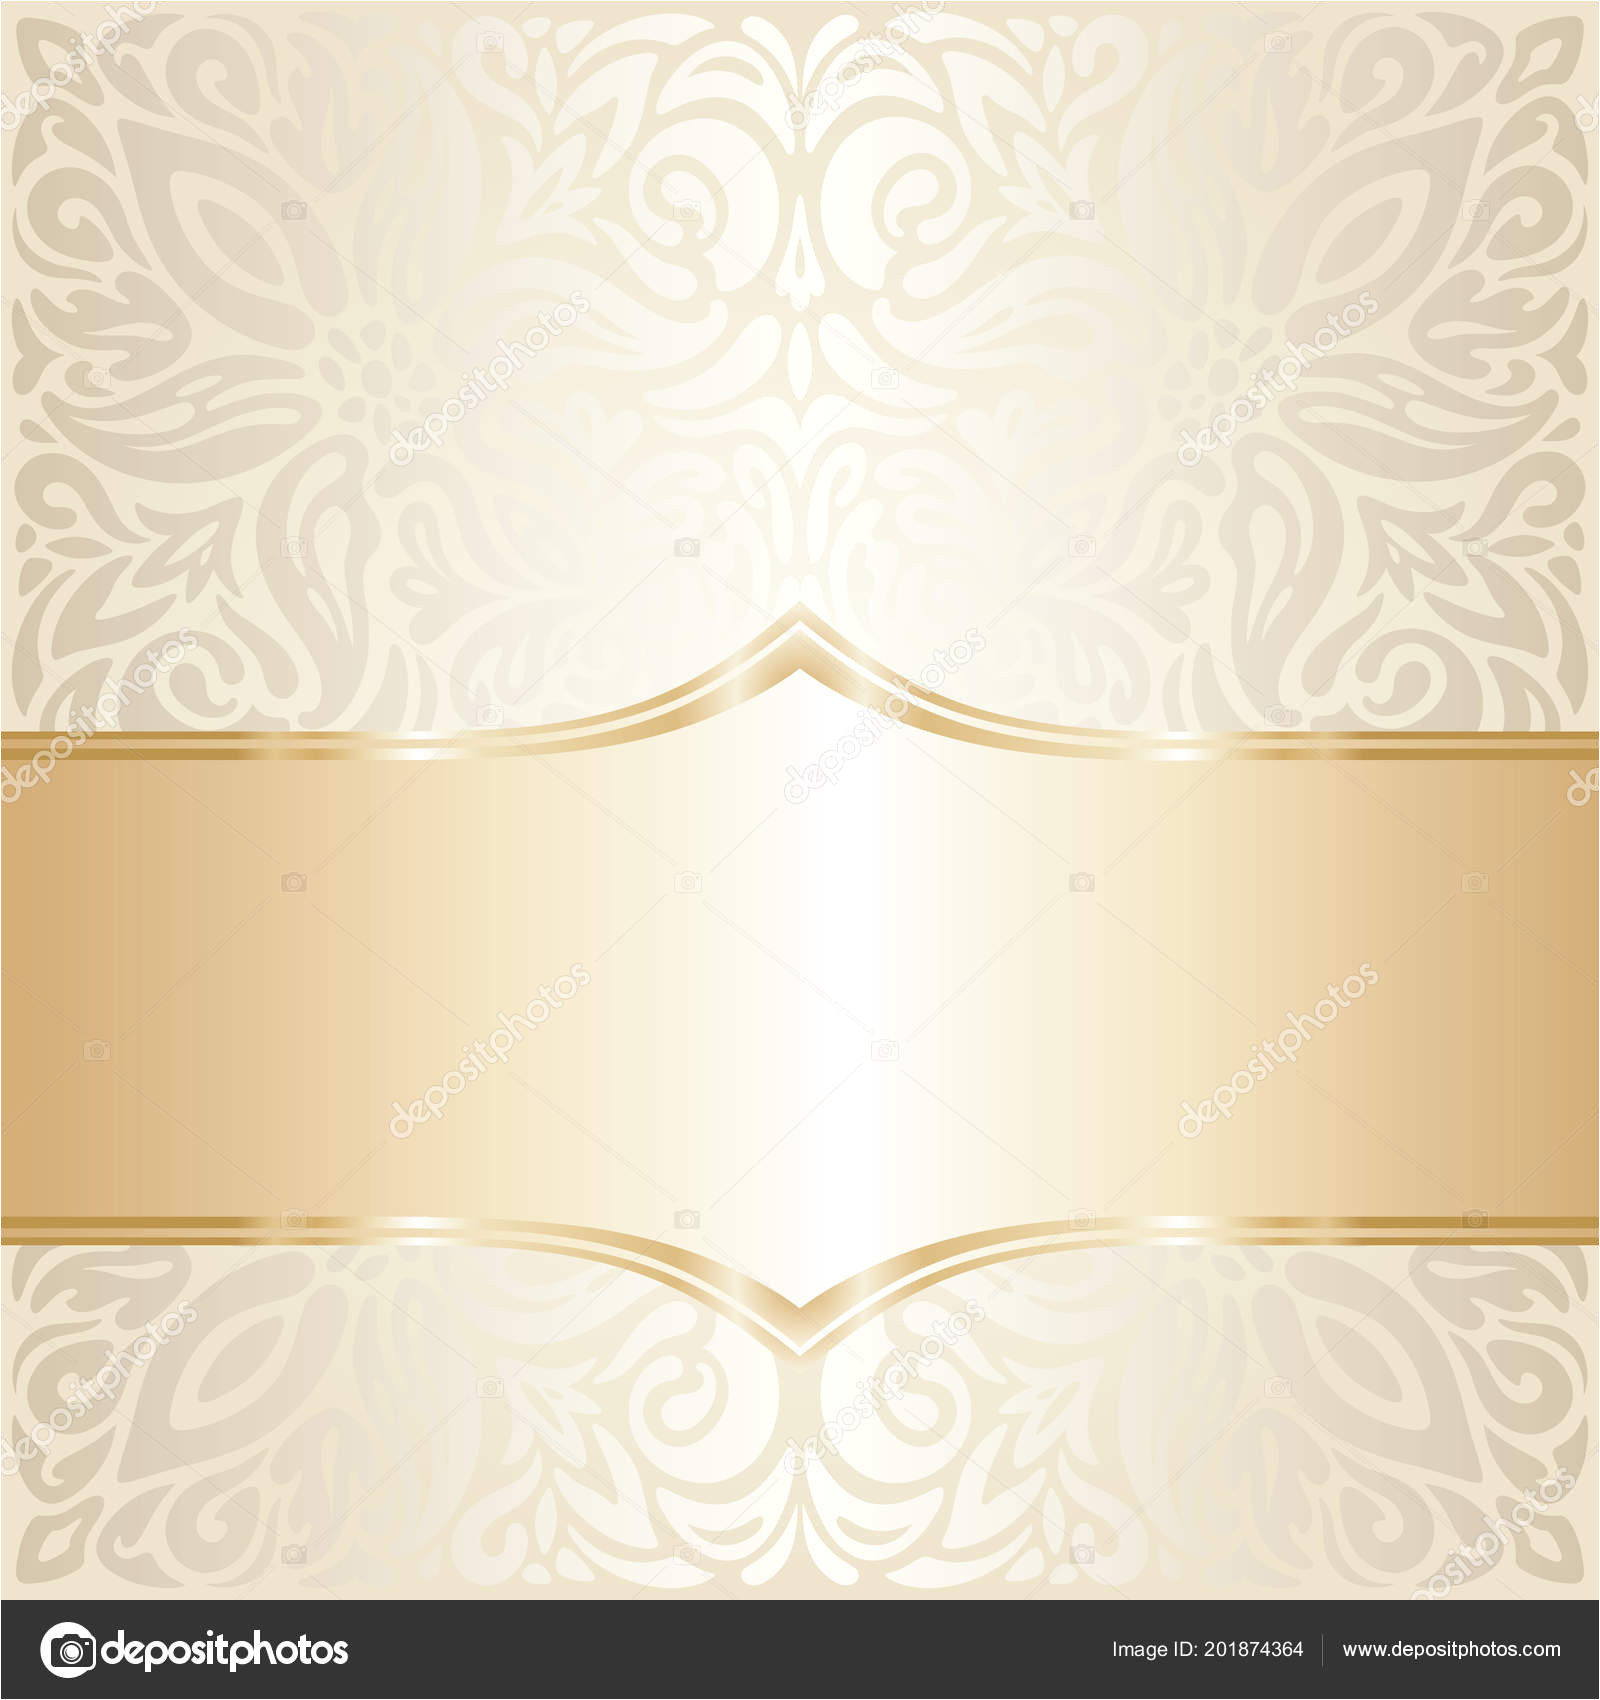 90 900339 floral wedding invitation wallpaper trend design ecru gold jpg